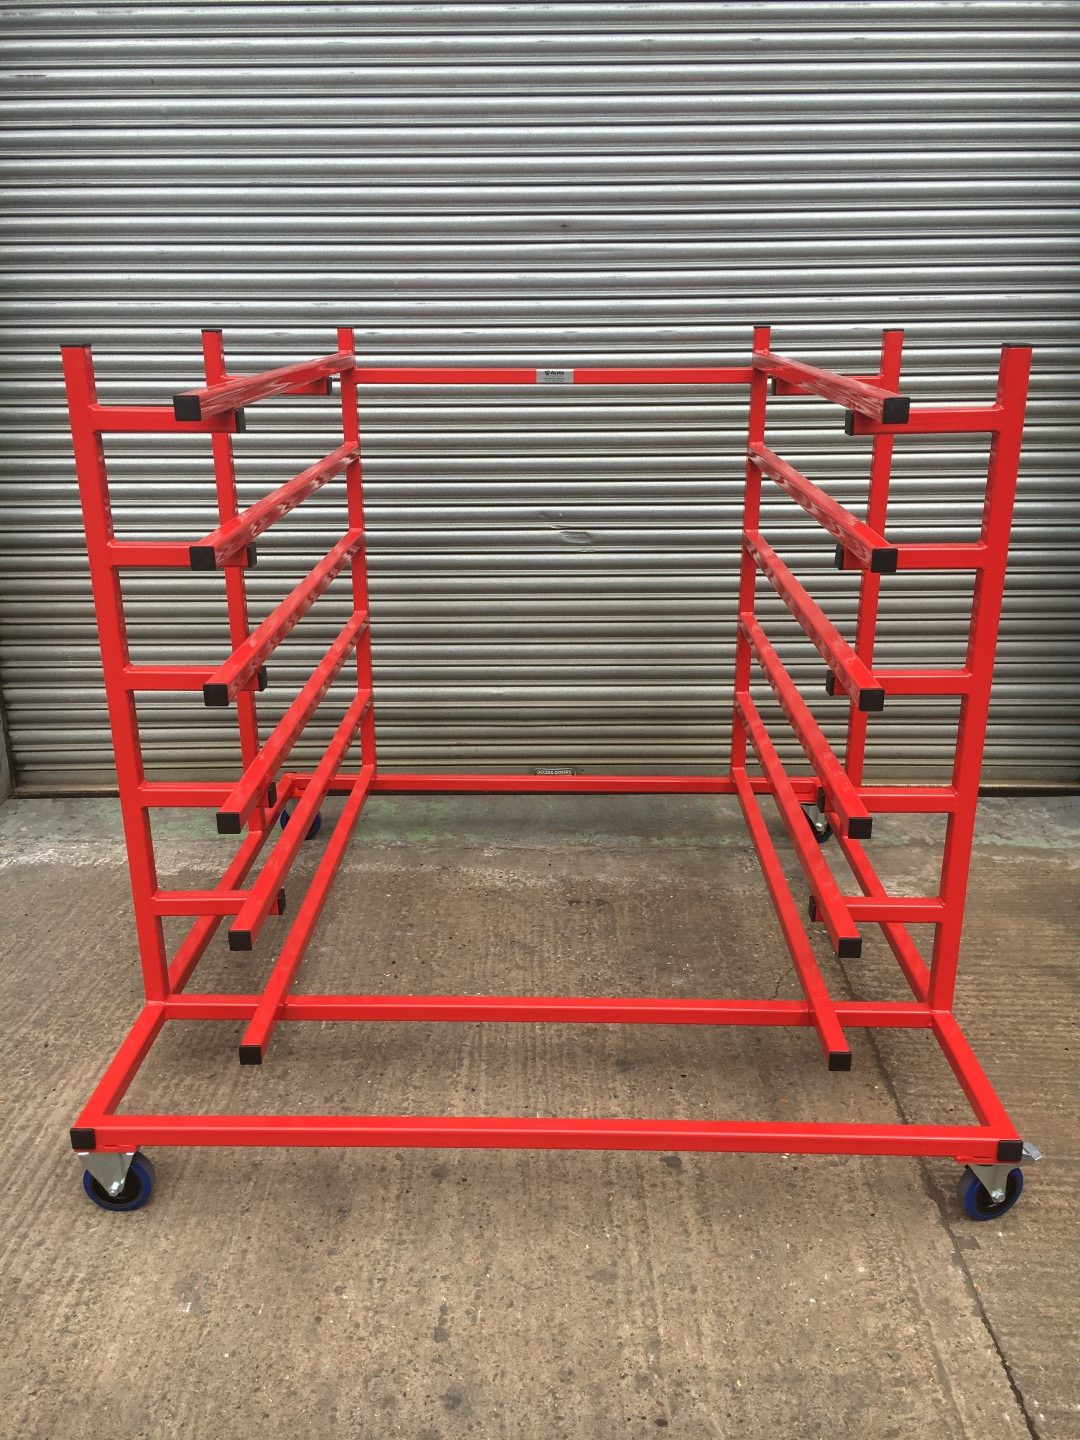 AME Red Trolleys